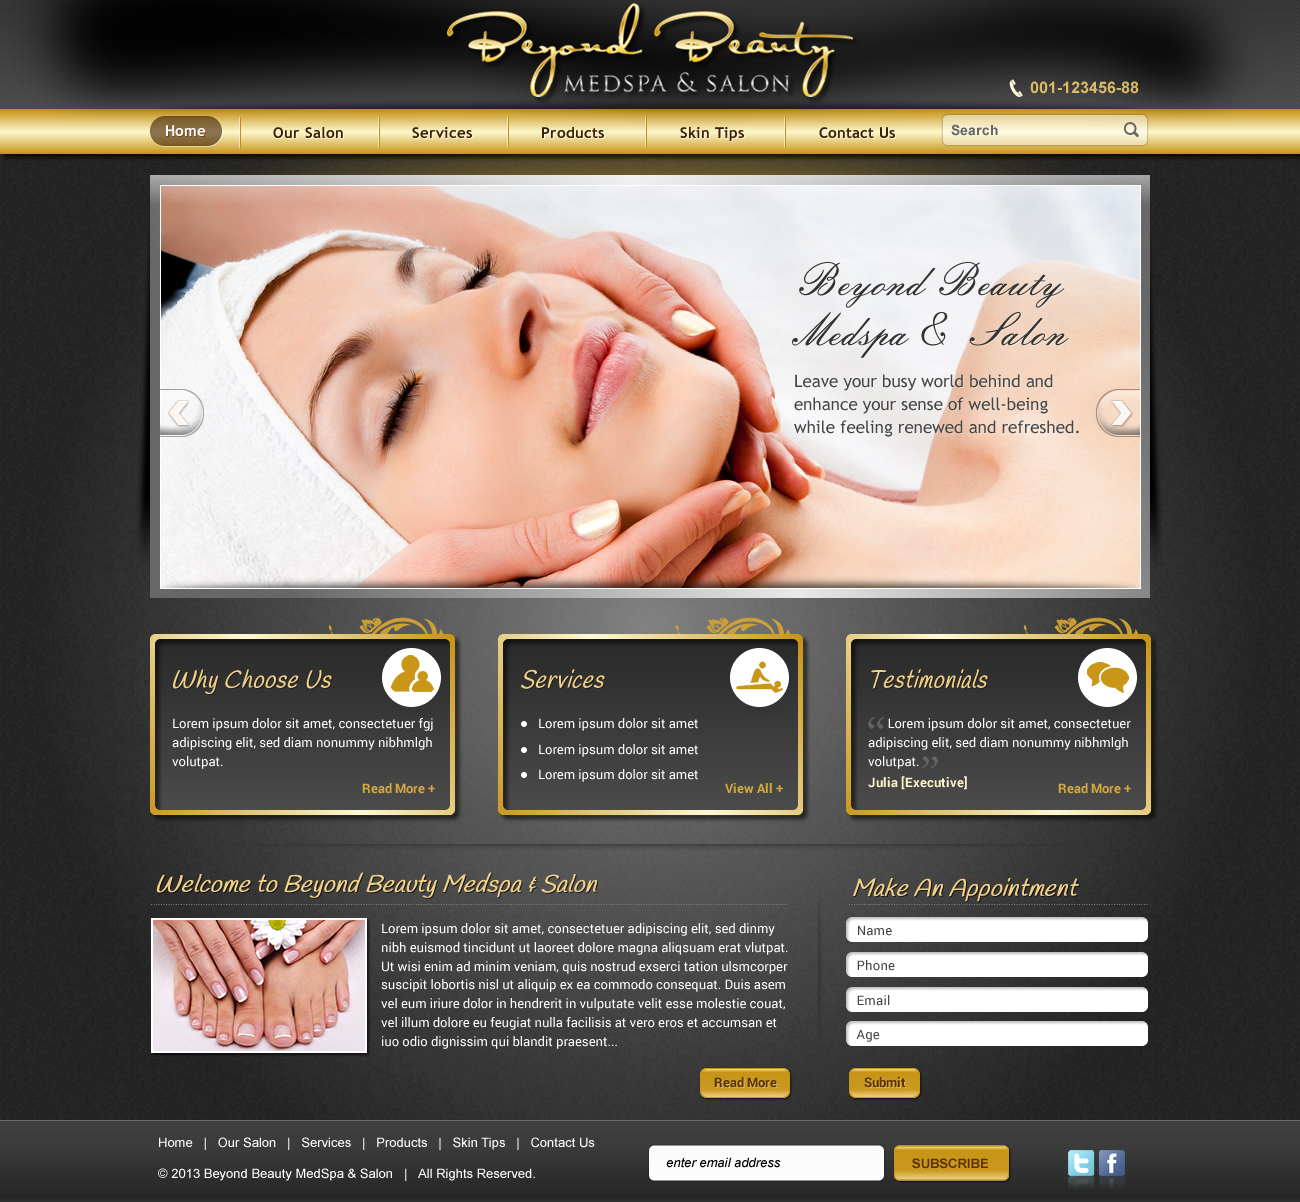 Website for Spa & Salon Services - Salon & Spa